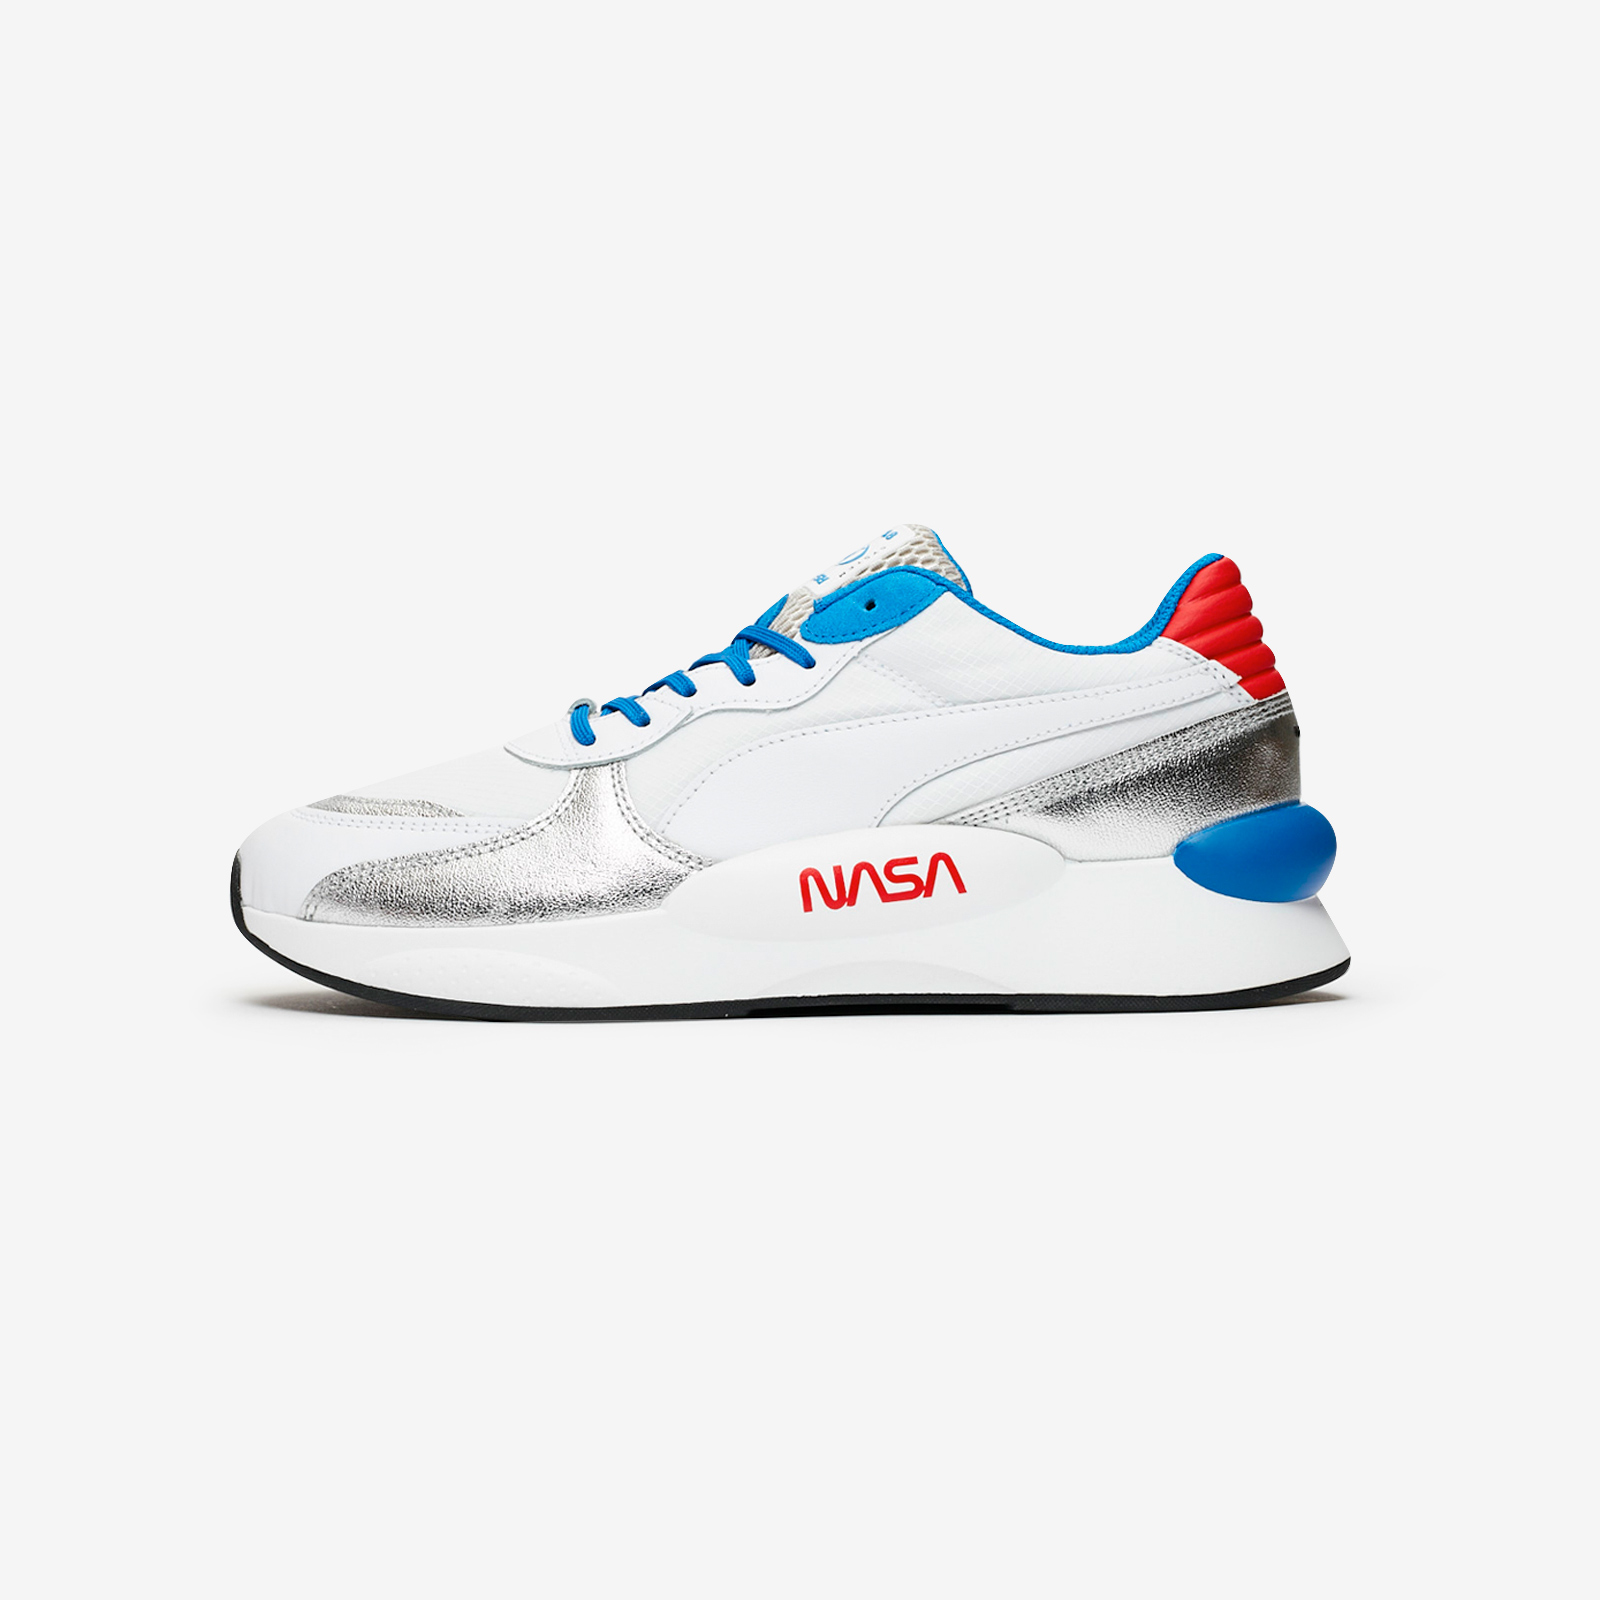 Puma RS 9.8 Space Agency - 372509-01